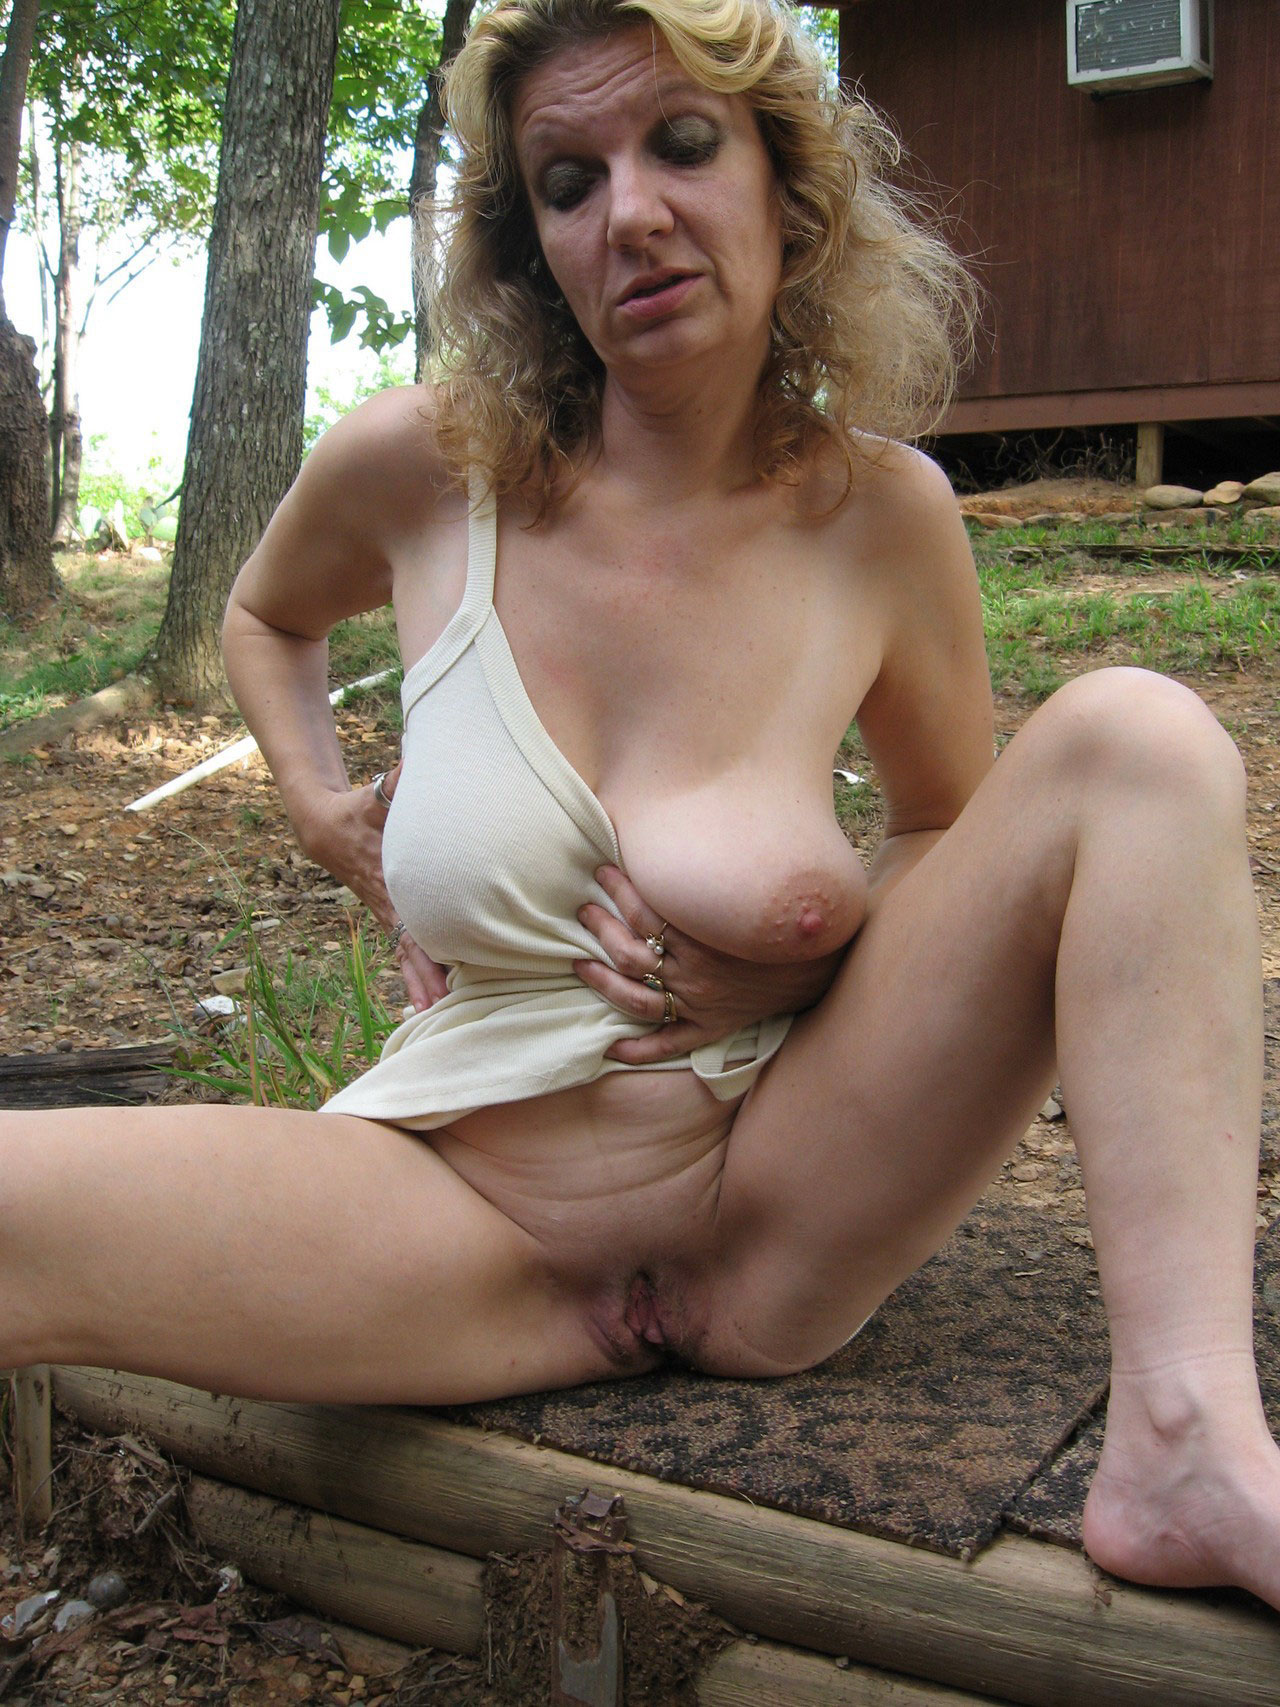 Milfs Nude Outdoors